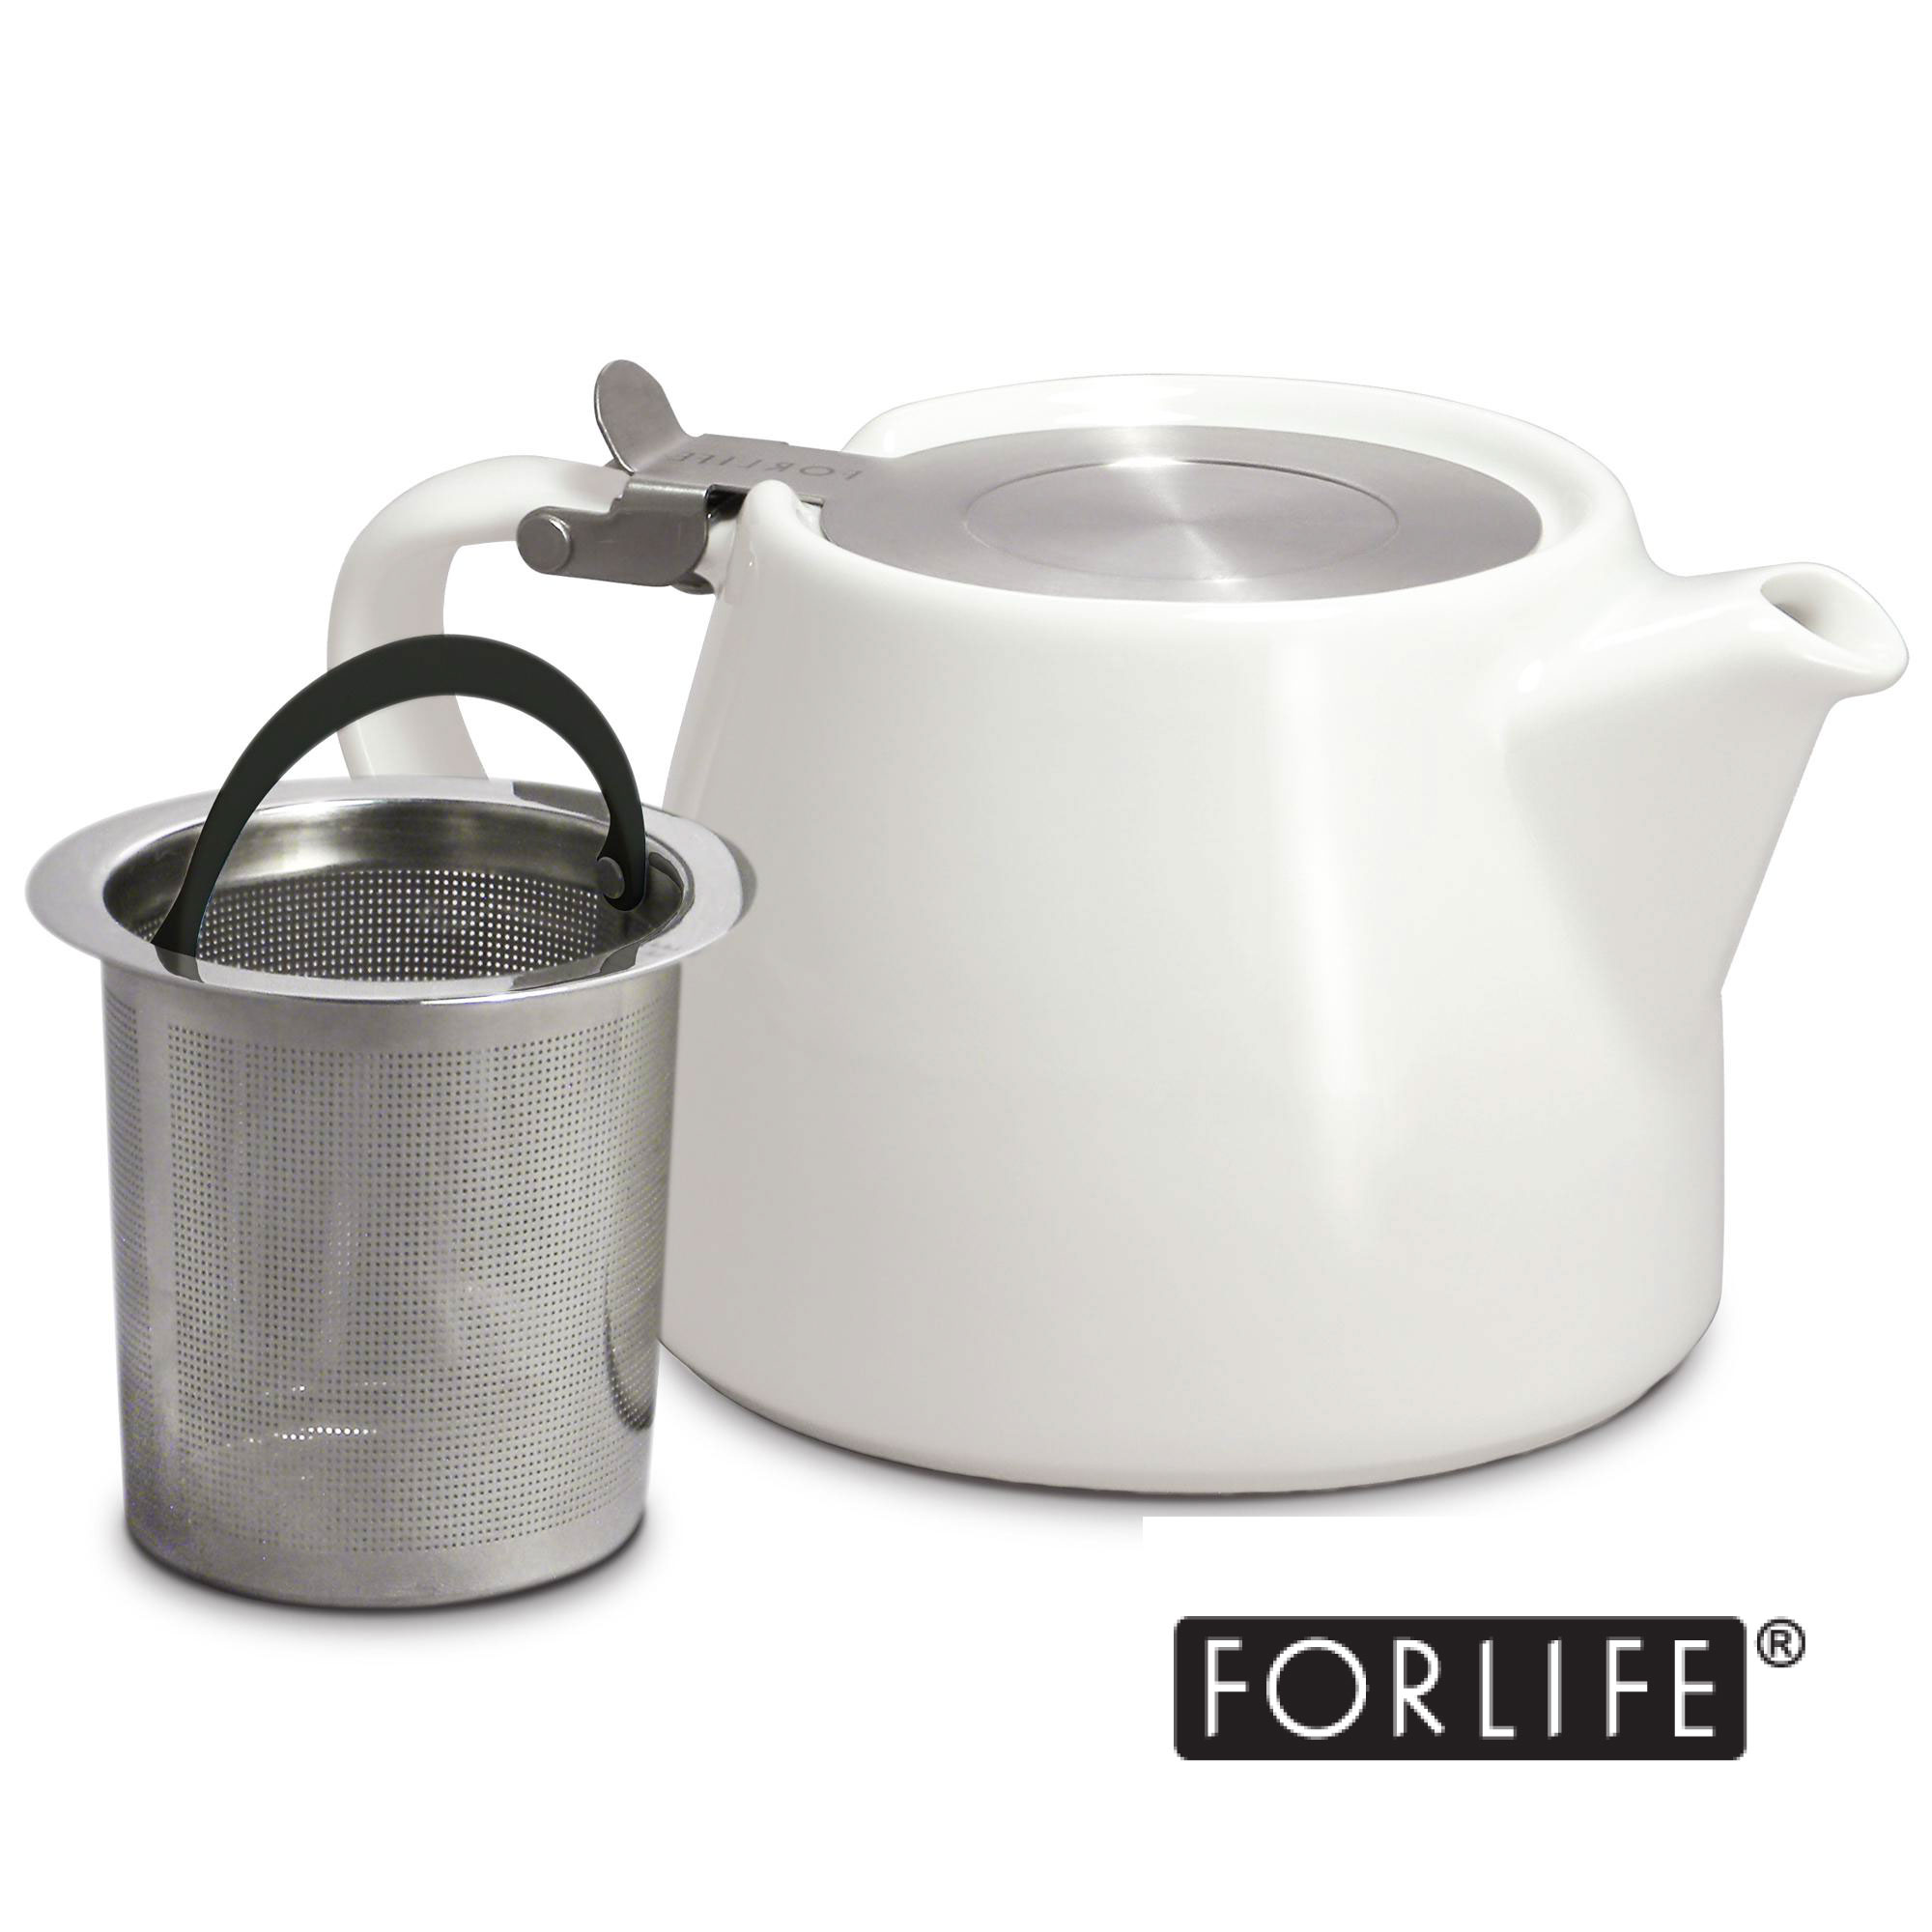 For Life Loose Leaf Teapot with Infuser